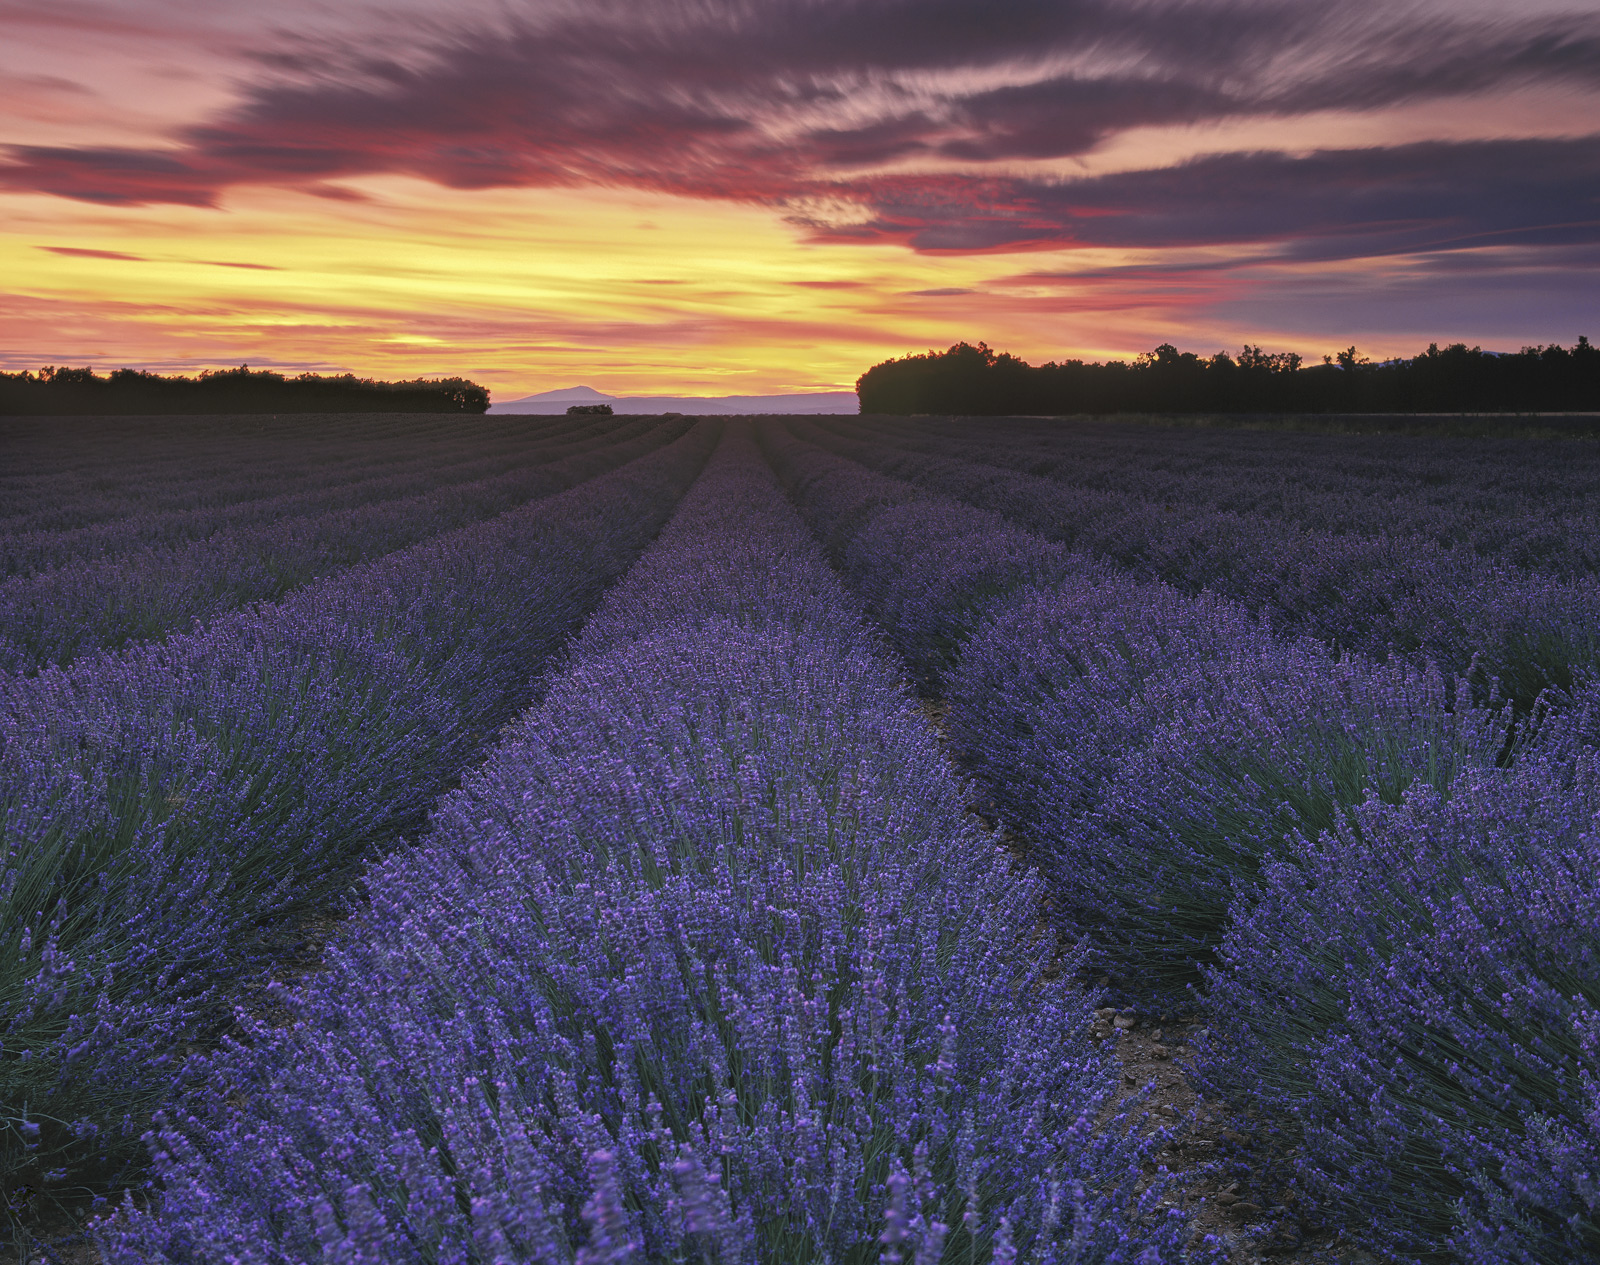 Beneath the fading twilight of after a quite sensational Provencal sunset lies the cool purple of converging rows of flowering...